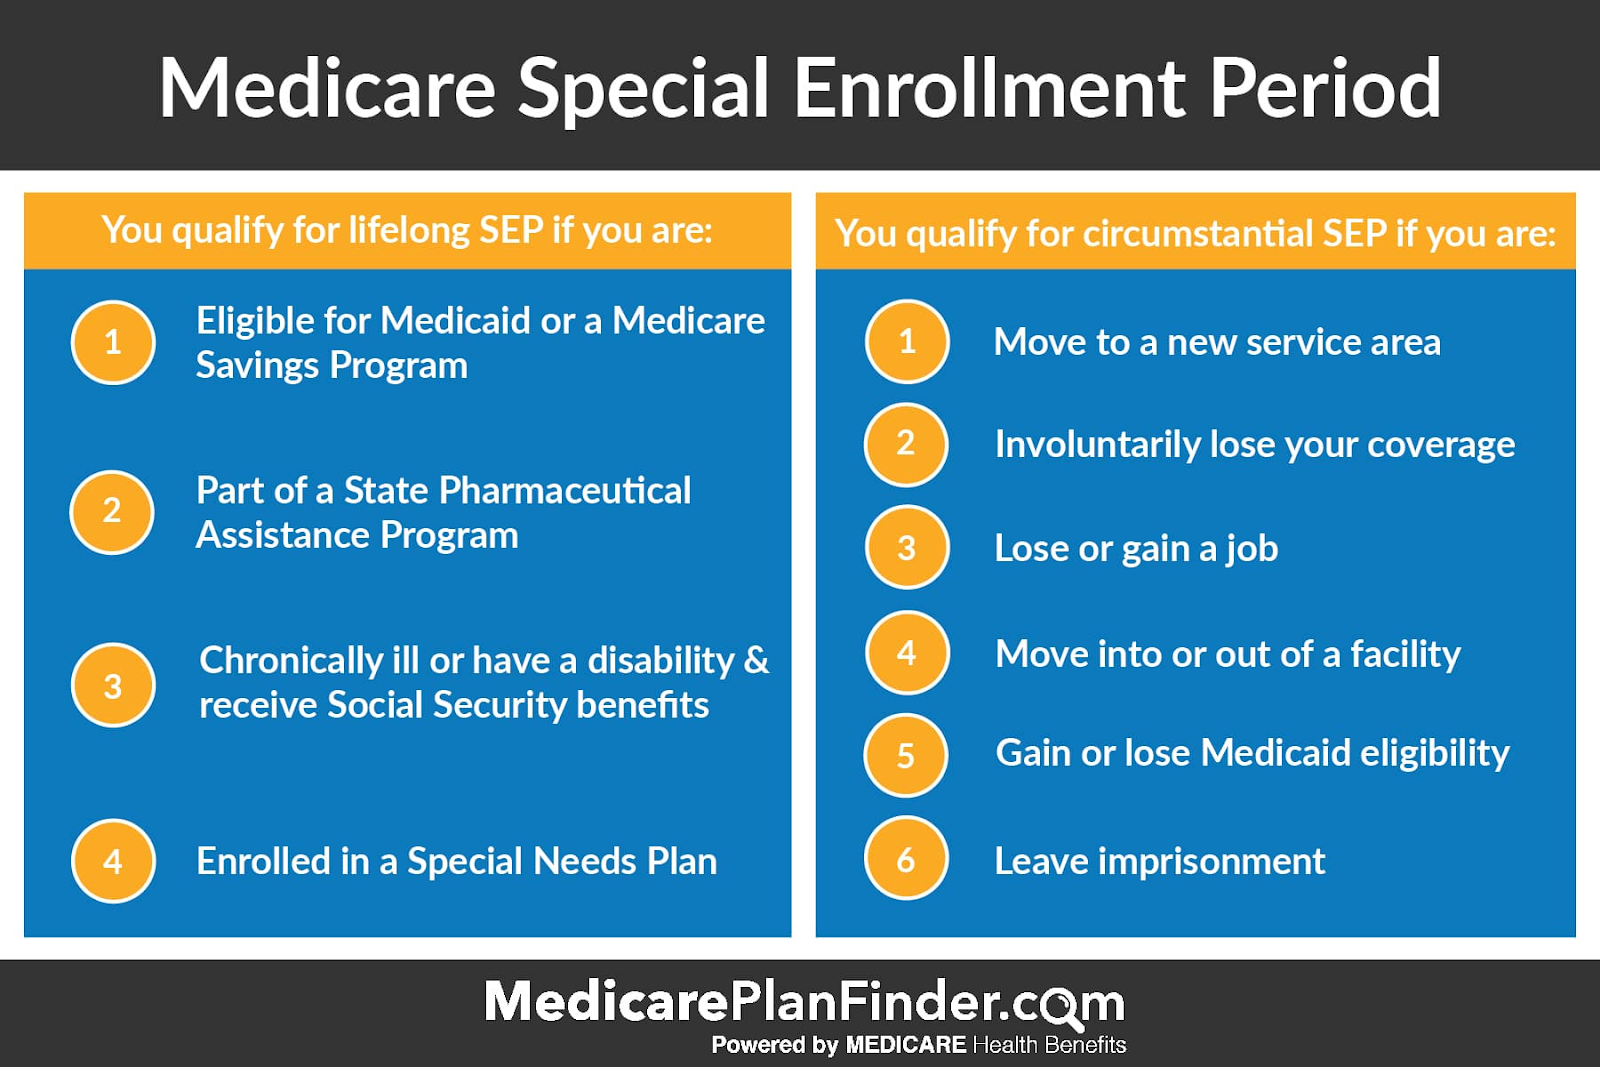 special-enrollment-period-medicare-plan-finder